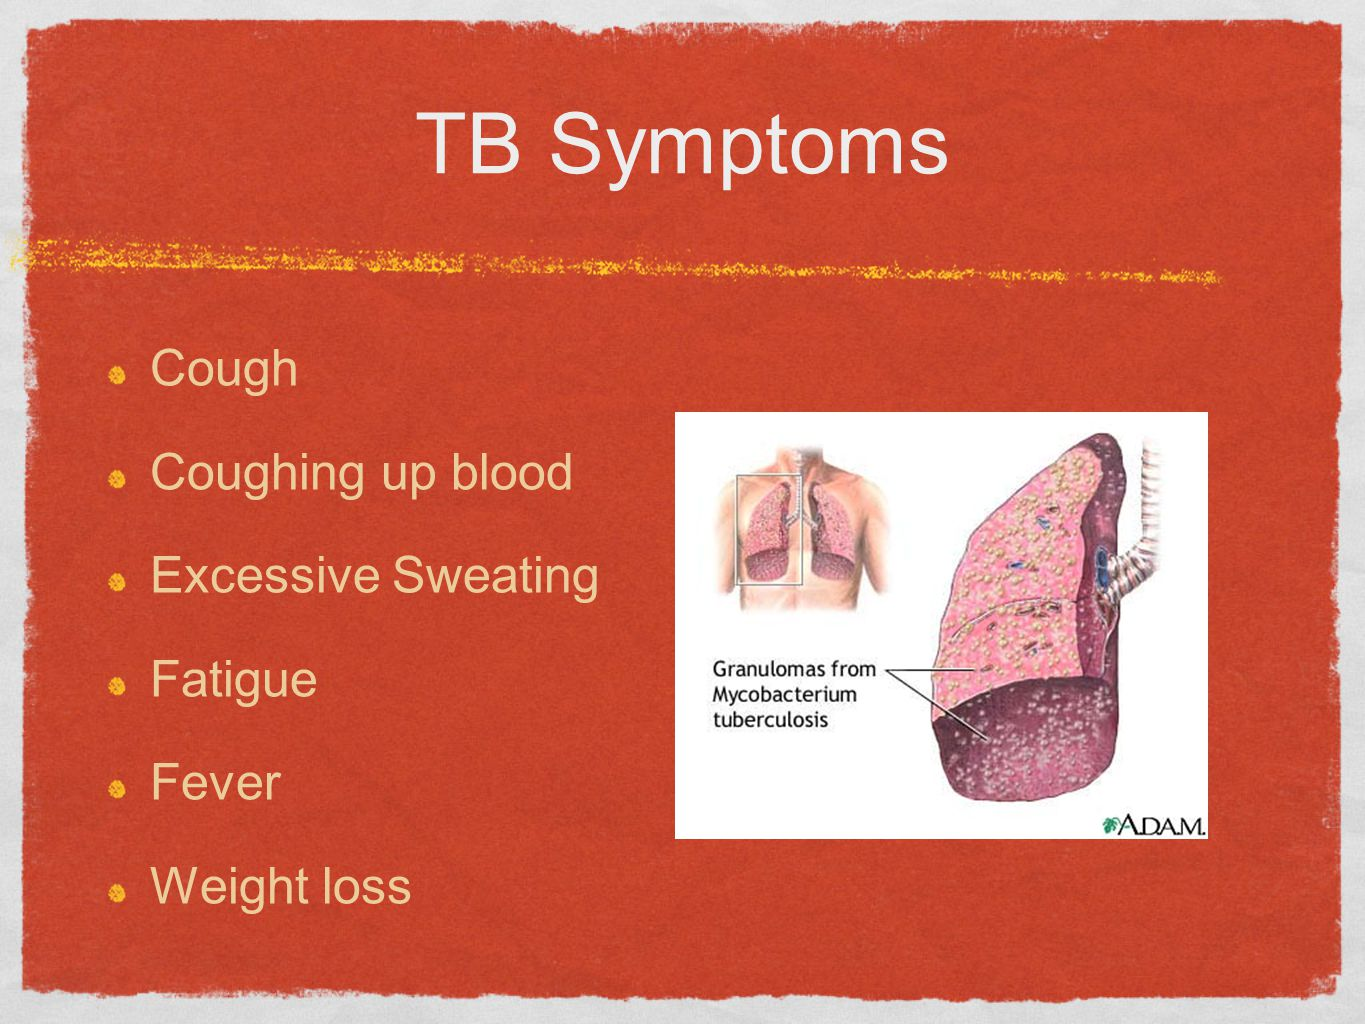 TB Symptoms Cough Coughing up blood Excessive Sweating Fatigue Fever